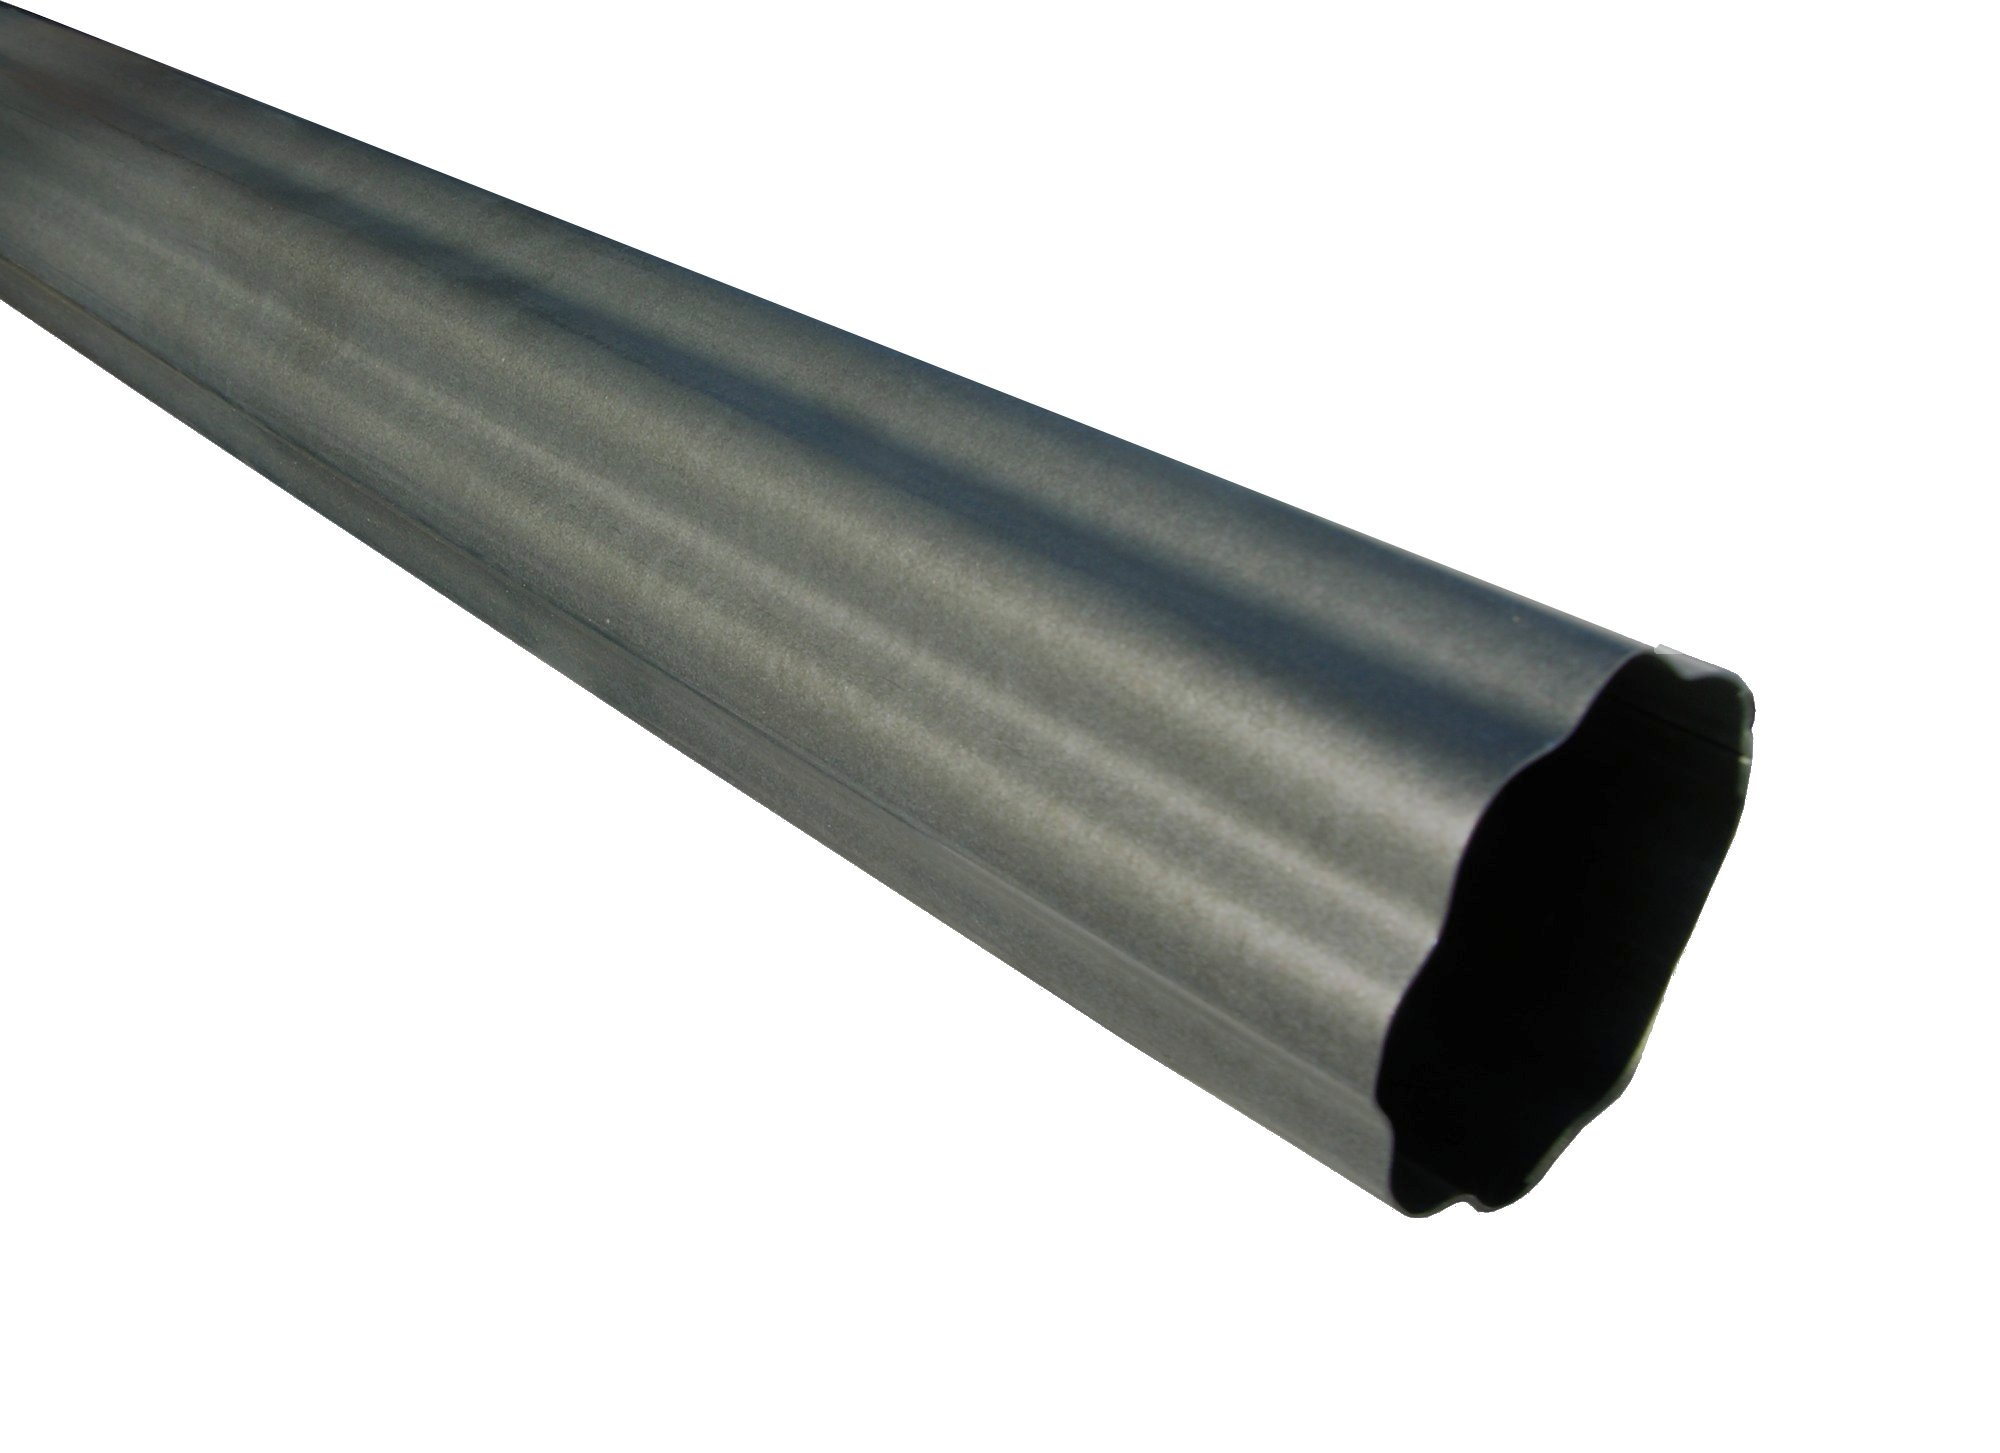 Paint Grip Steel Corrugated Downspout